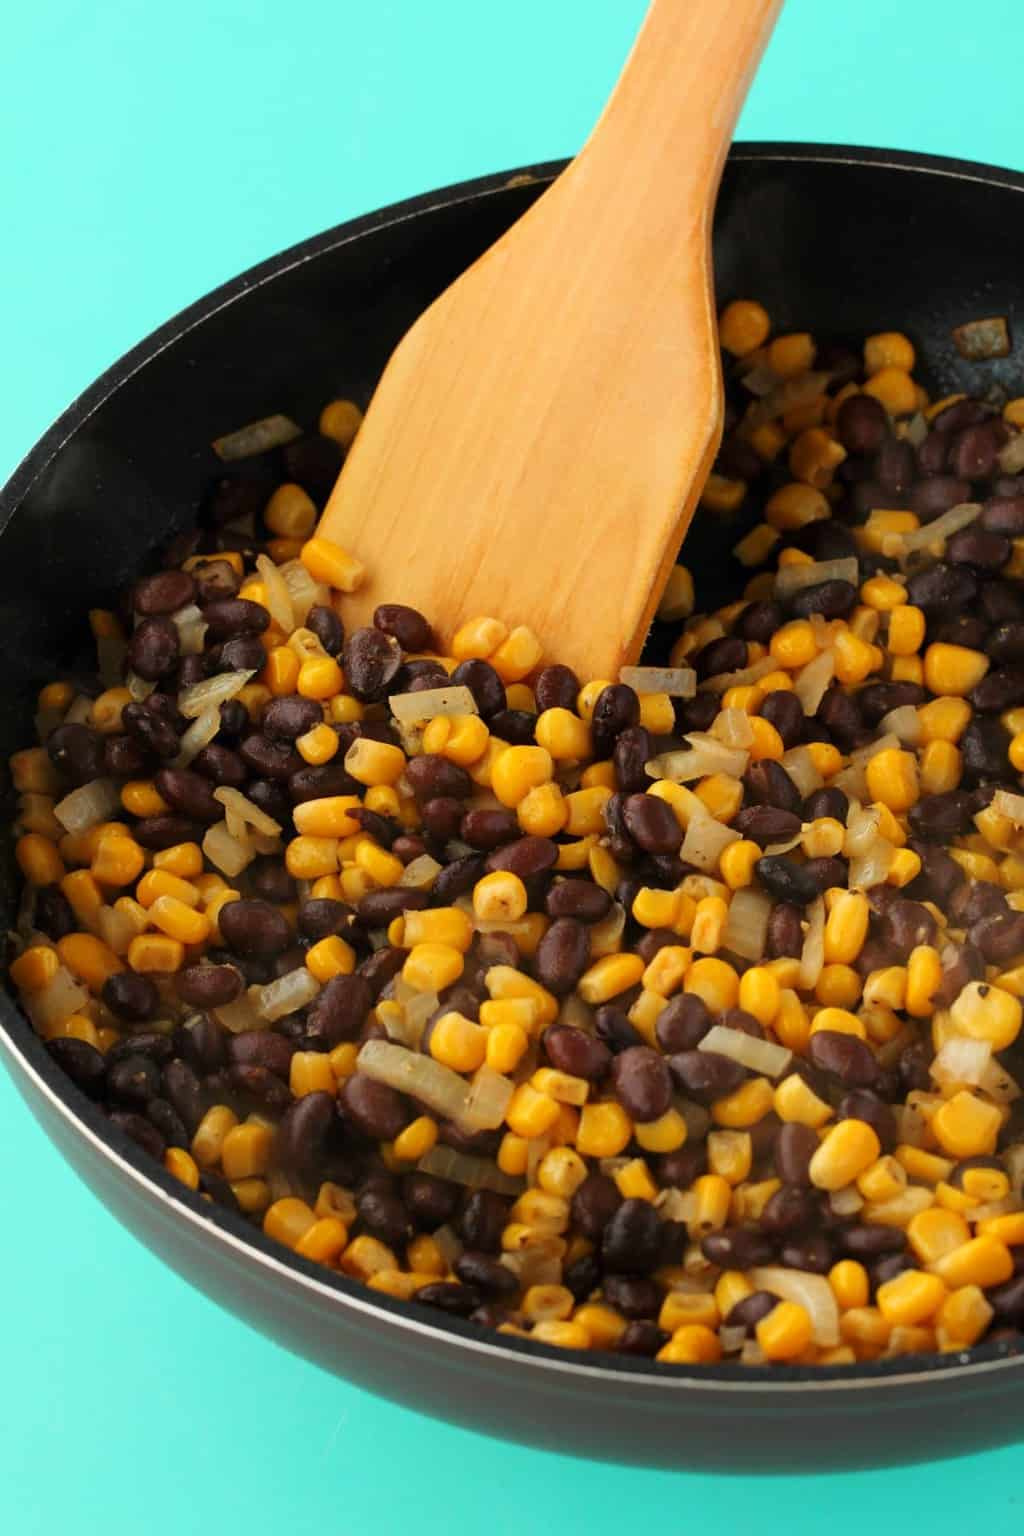 Black bean and corn mix in a frying pan with a wooden spatula.